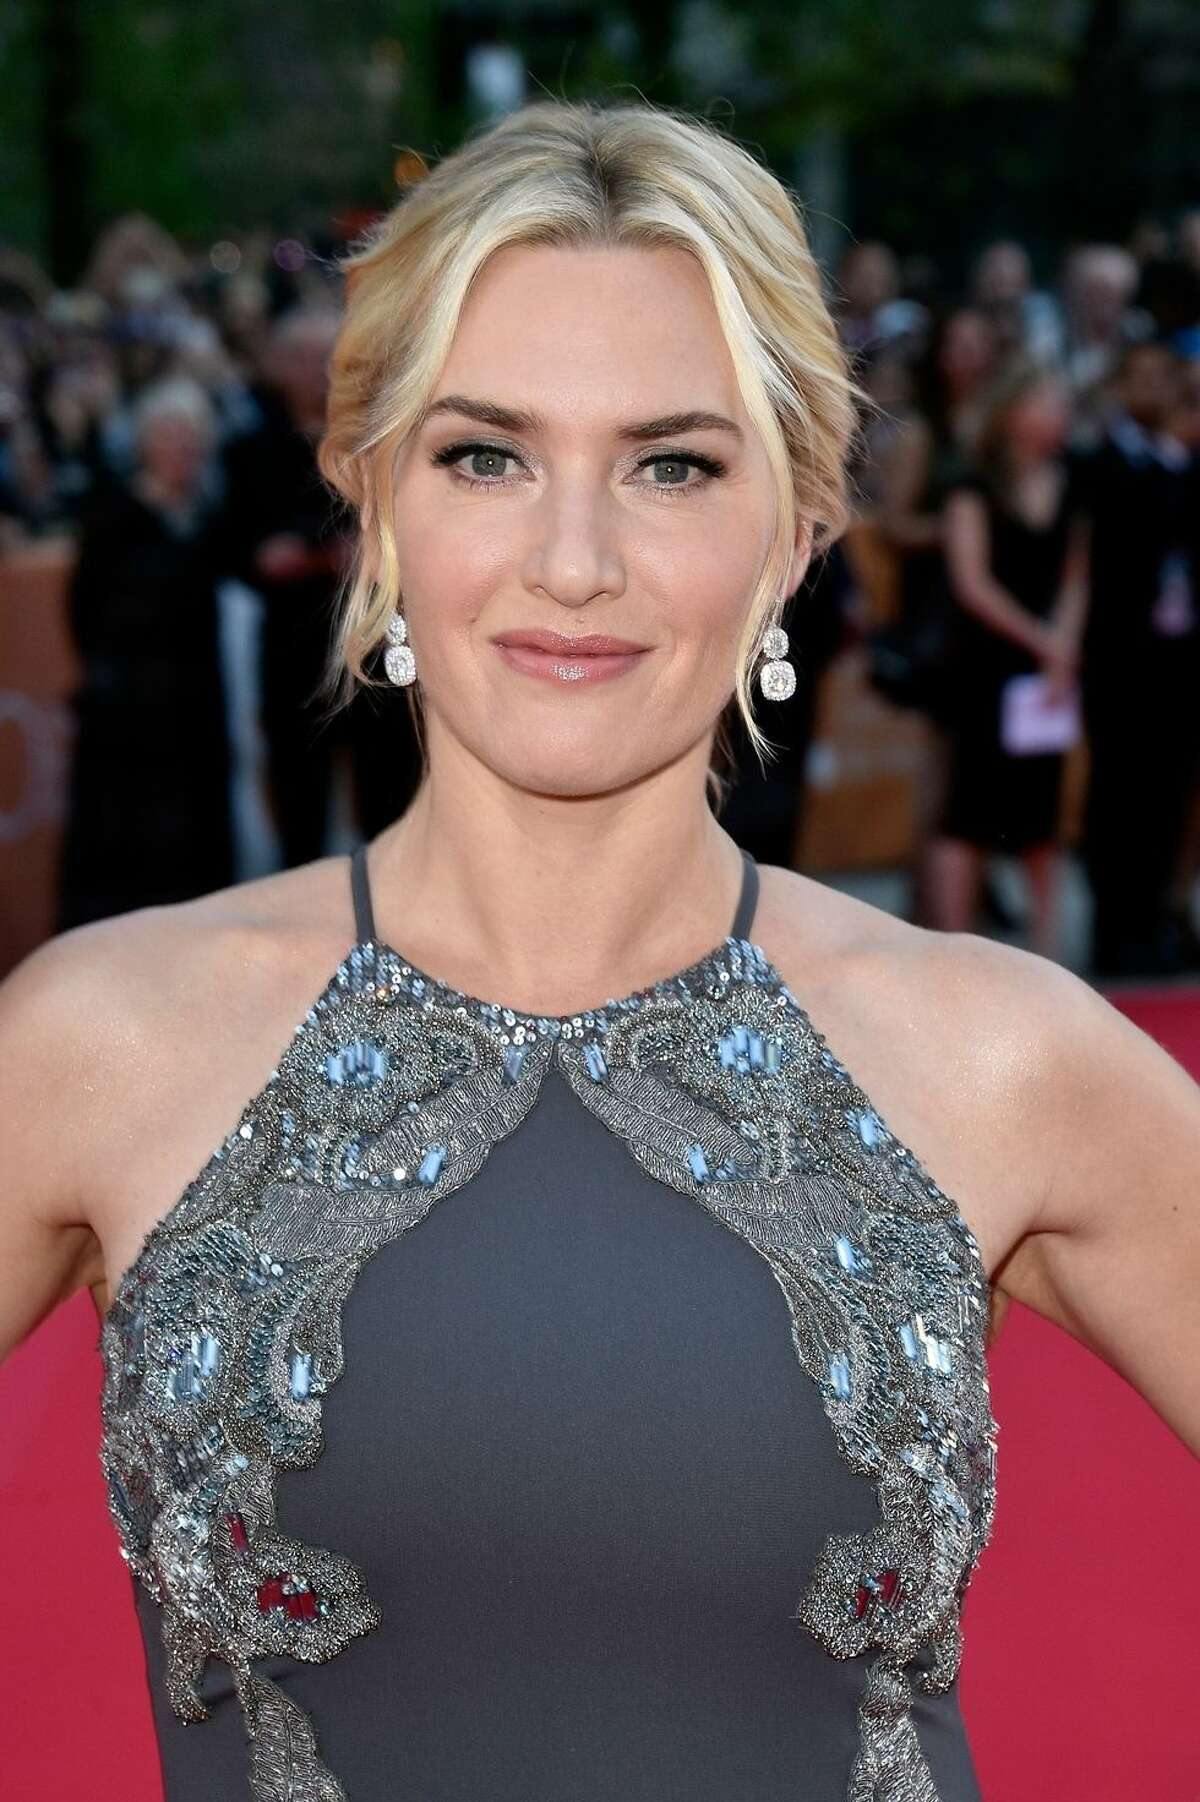 3) Kate Winslet, 'Titanic' Even though Kate doesn't hate Titanic the film, she's not too thrilled with her performance as Rose when looking back.